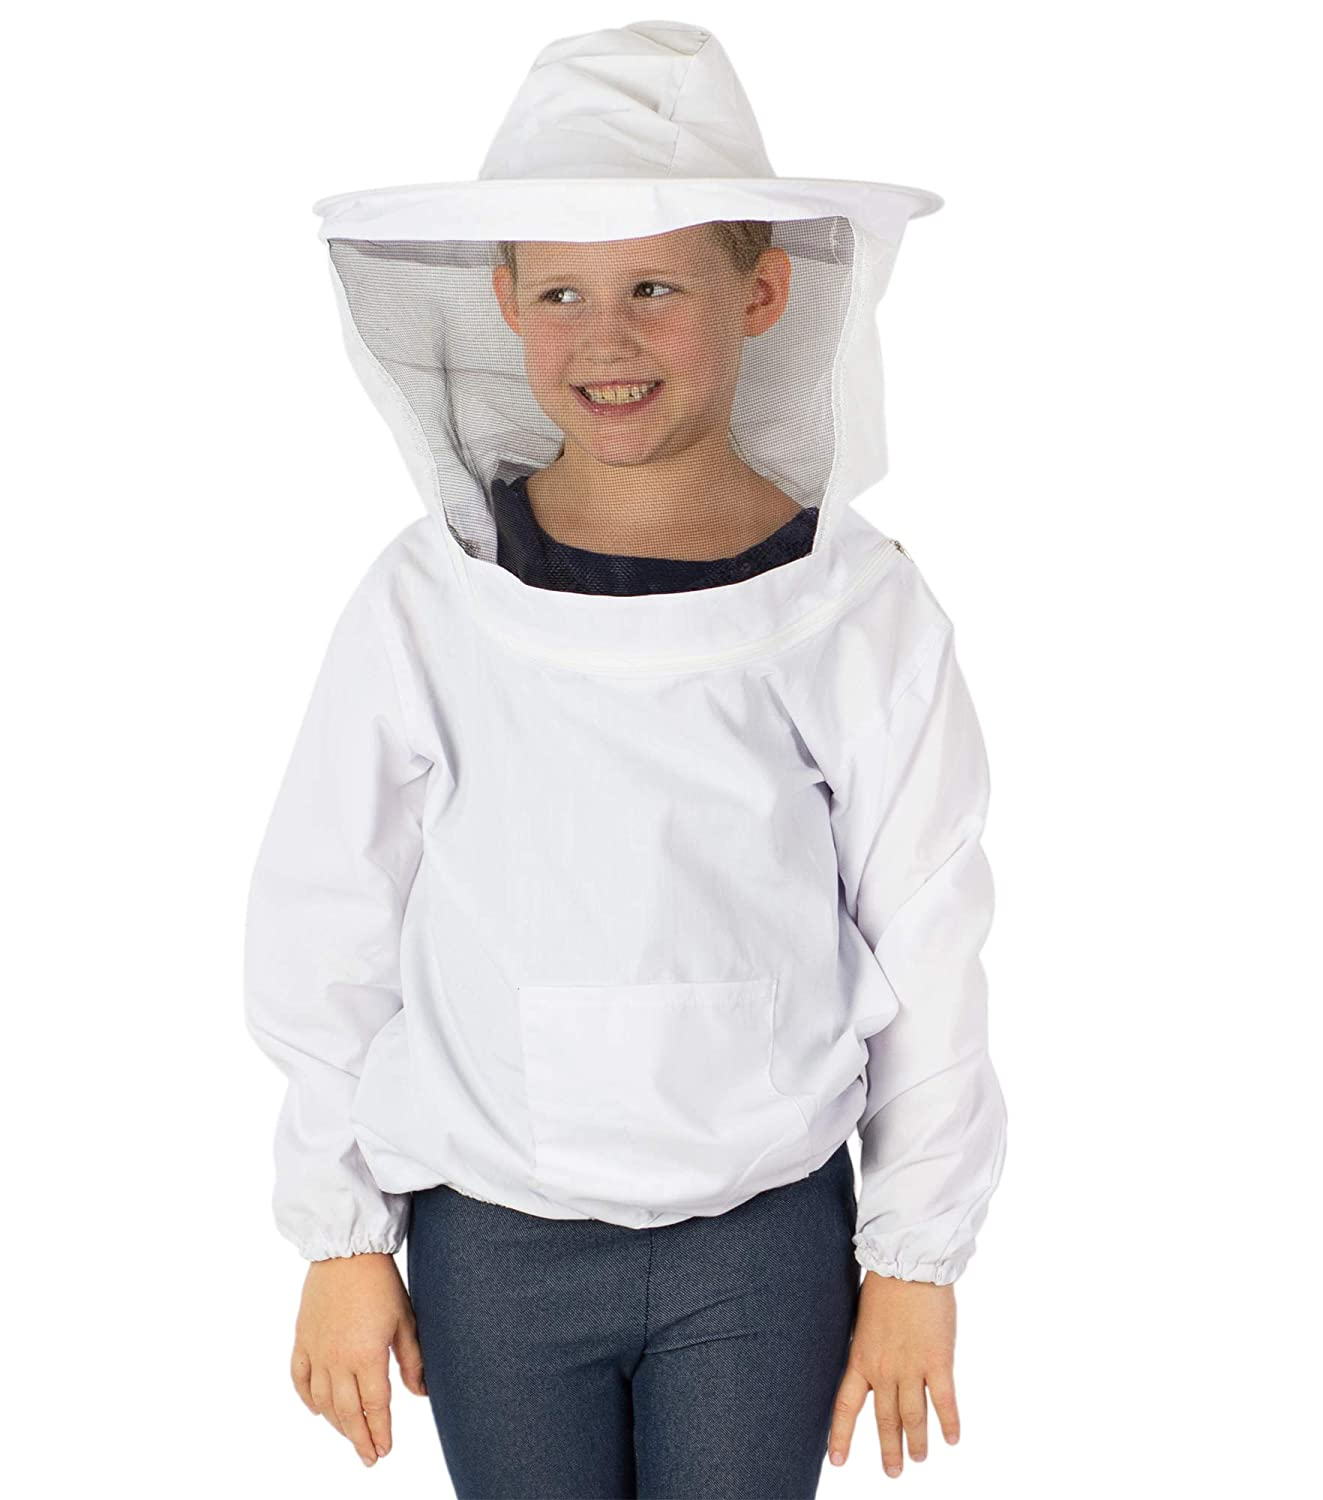 VIVO White Beekeeping Youth Sized Bee Keeping Suit, Jacket, Pull Over, Smock with Veil (BEE-V105Y)